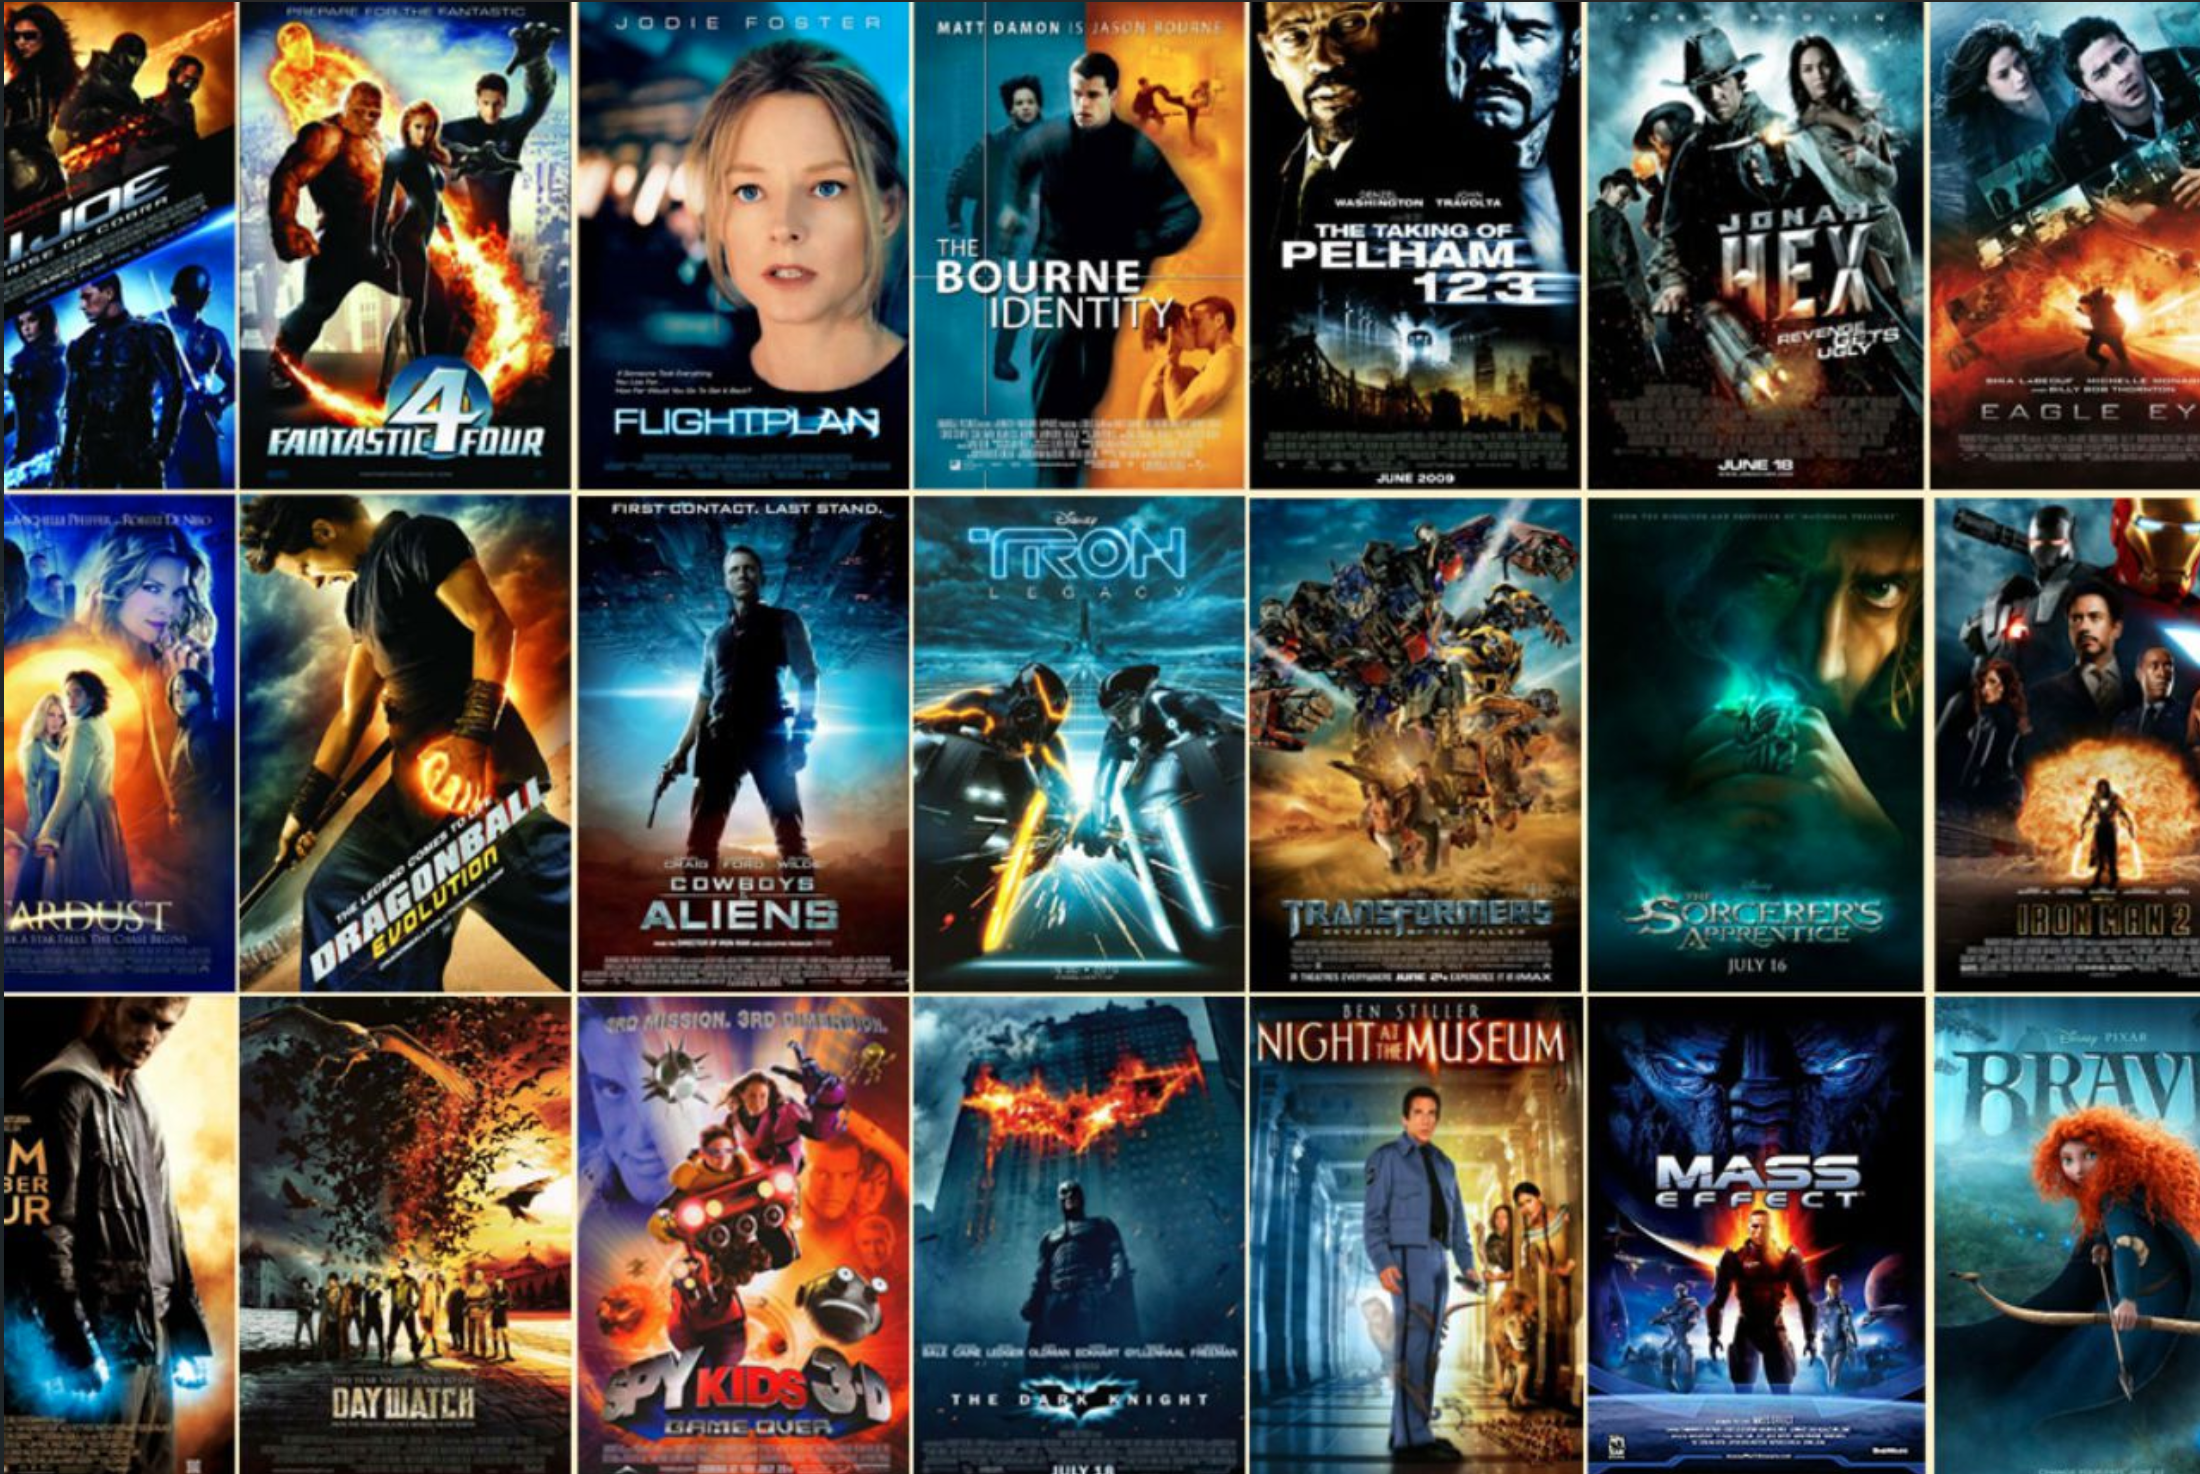 The Ten Types Of Movies, According To Our Movie Posters